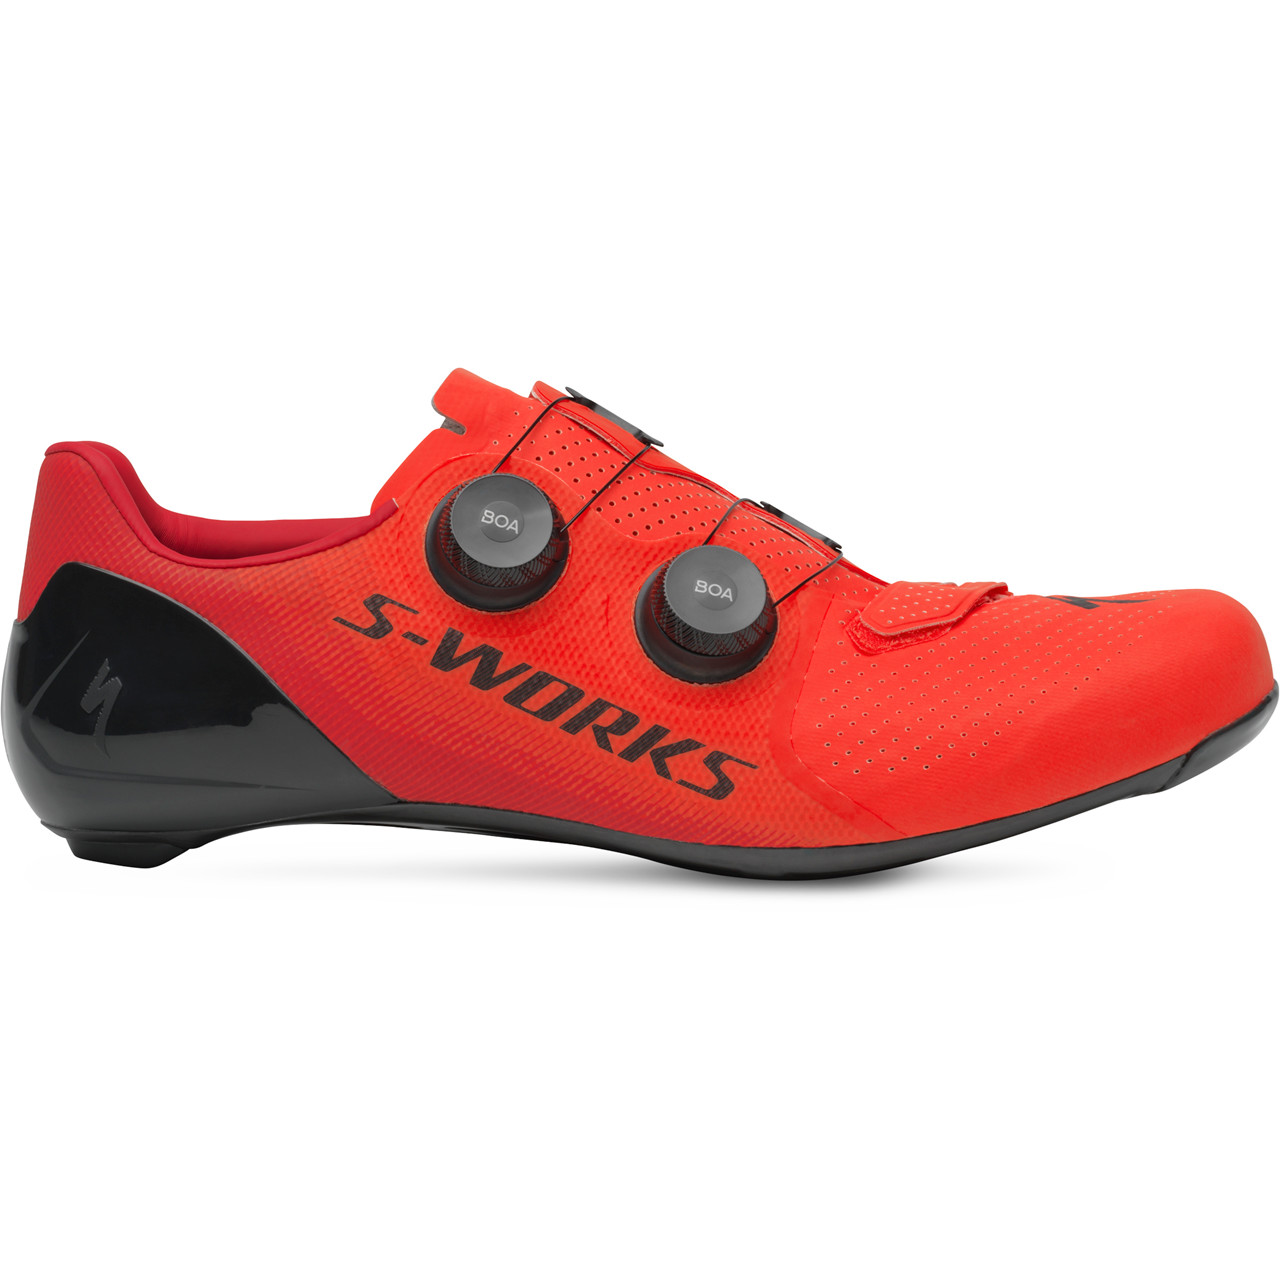 S-Works 7 Road (Rocket Red / Candy Red, 48) Cykel Tilbehør